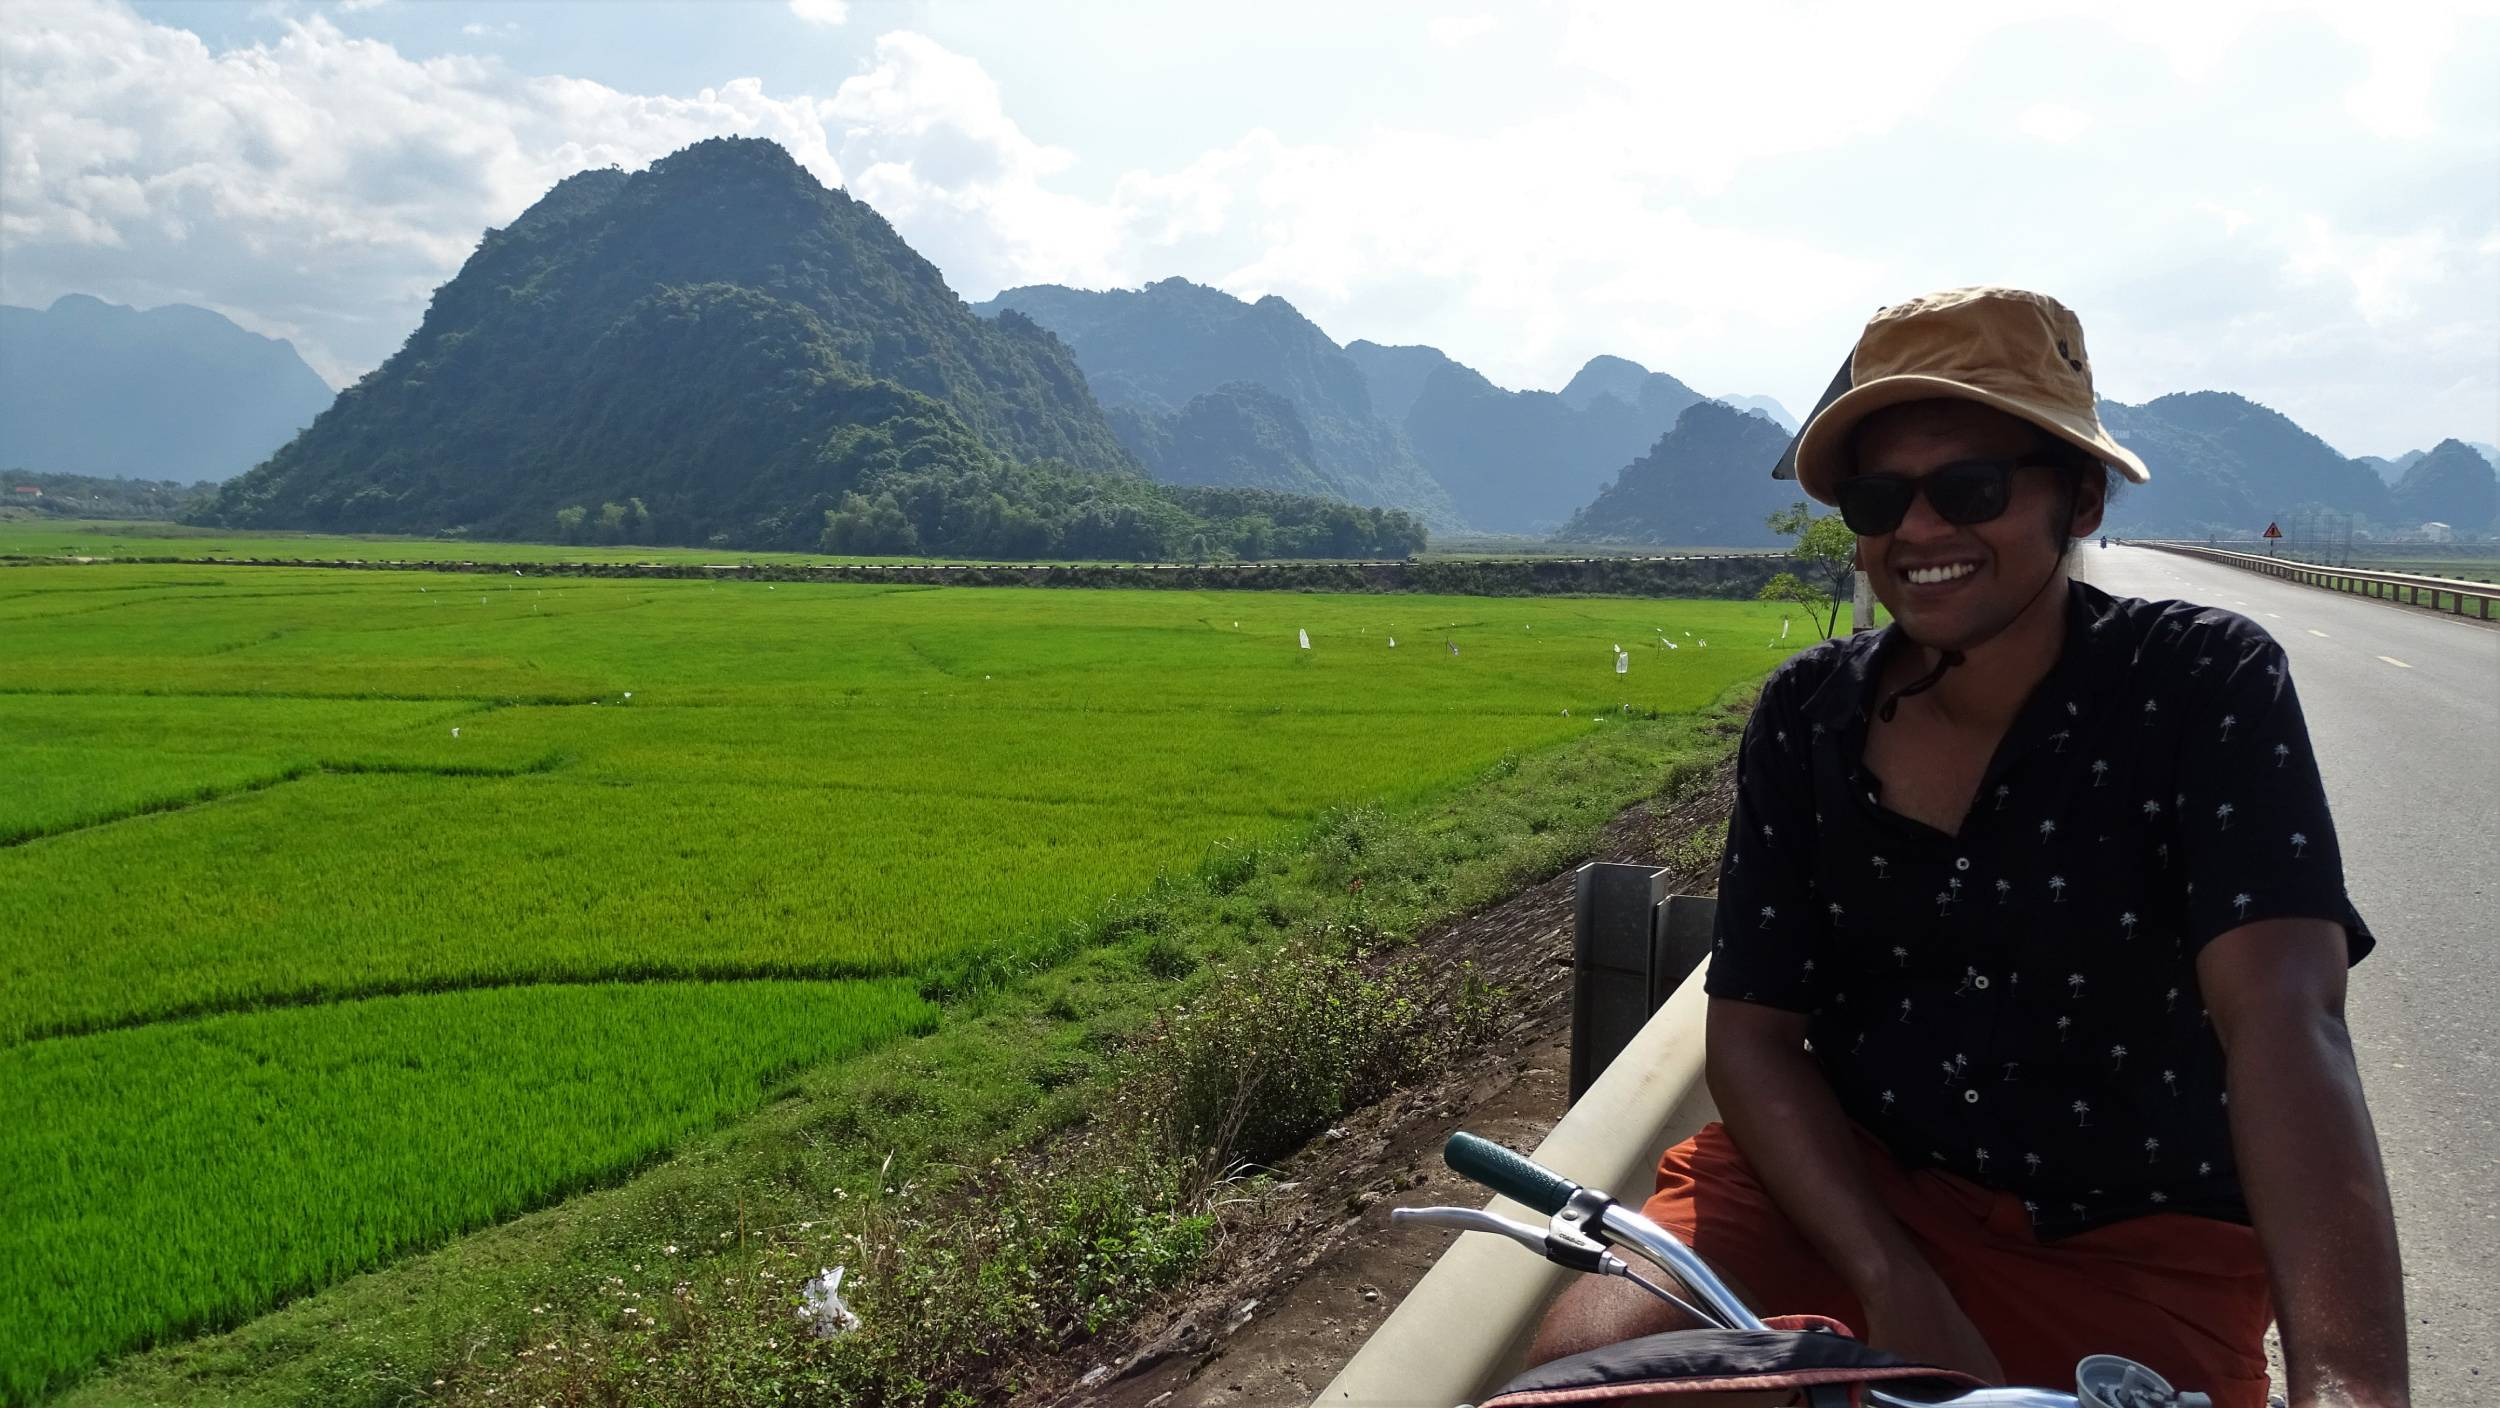 Cycling on the empty highway from Phong Nha Town with the  views of verdant green rice fields and forest-clad, mountains